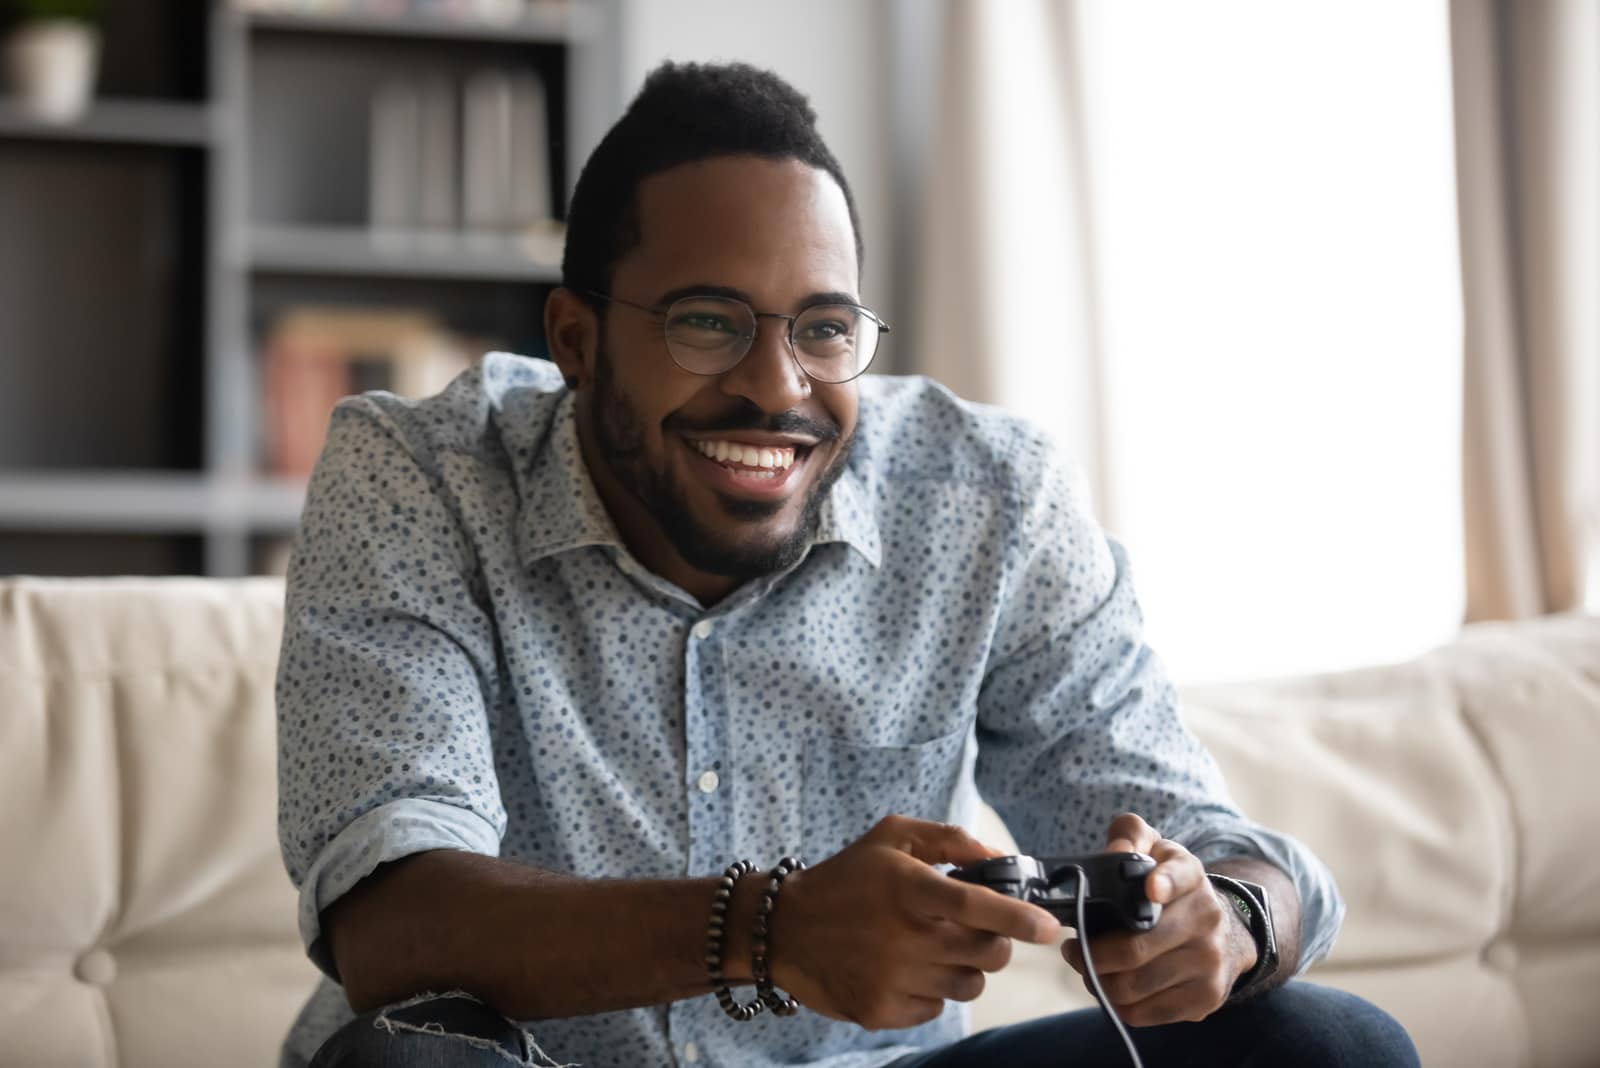 smiling black man plays play station